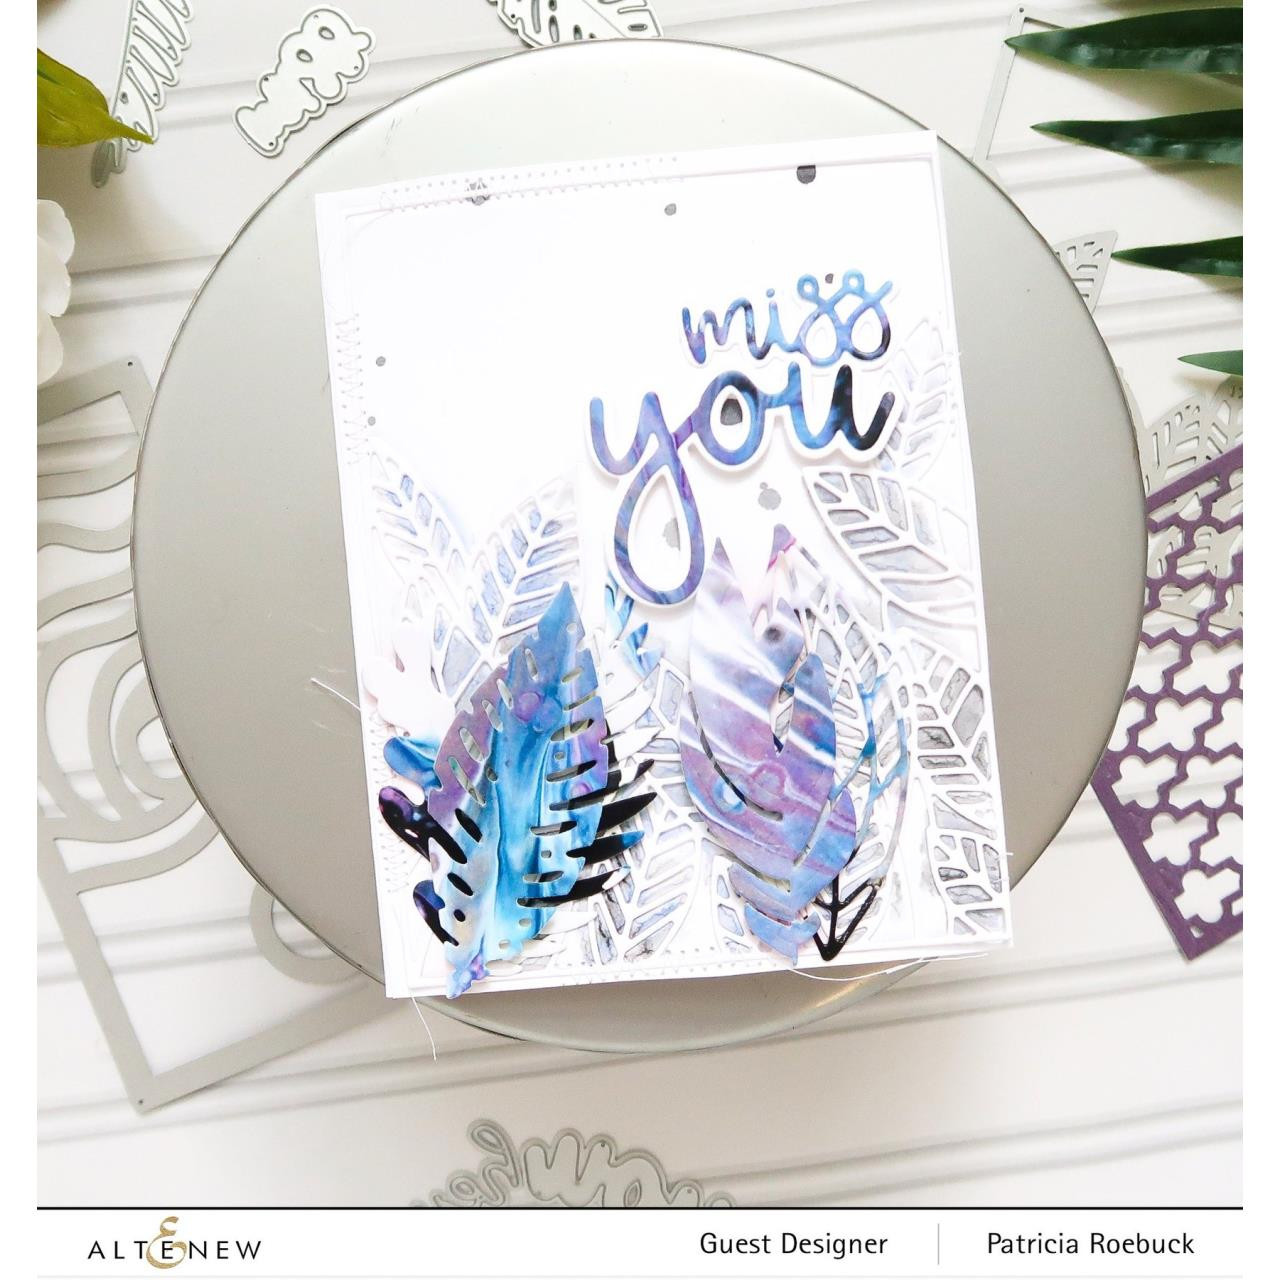 All About You Word, Altenew Dies -